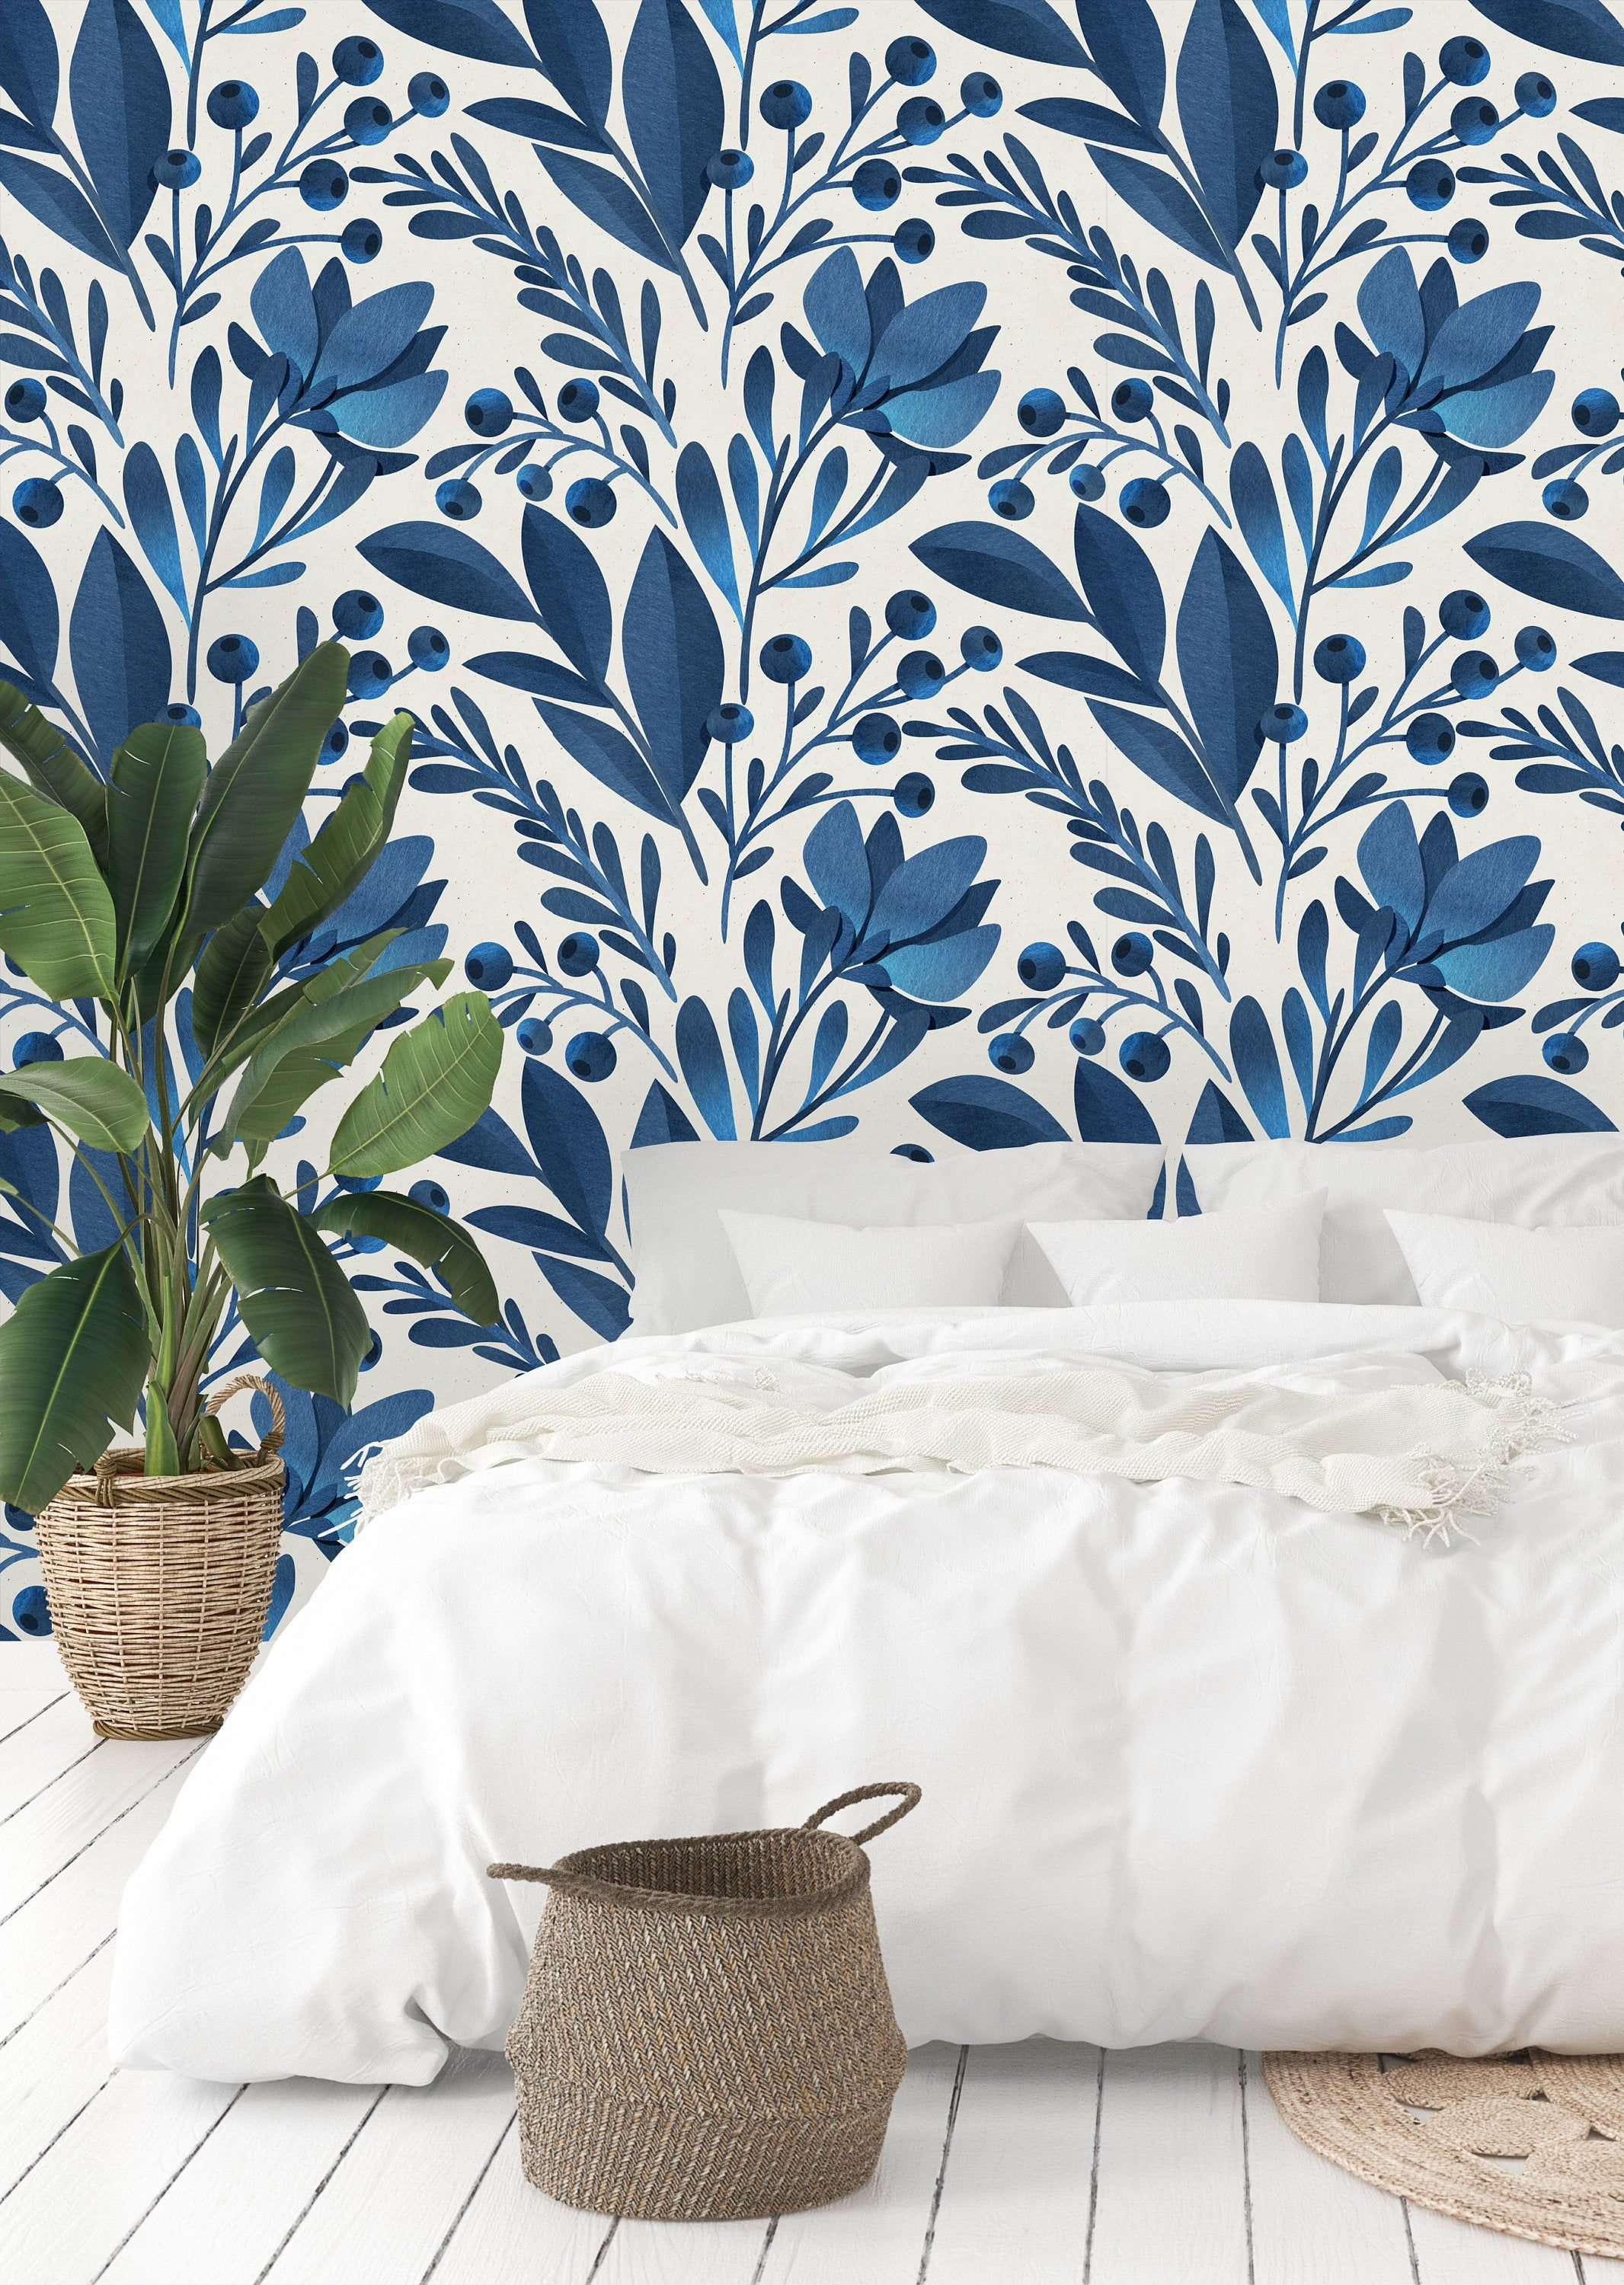 Watercolor Blue Flowers And Leaves Removable Wallpaper Peel Etsy Removable Wallpaper Wall Wallpaper Blue Flower Wallpaper